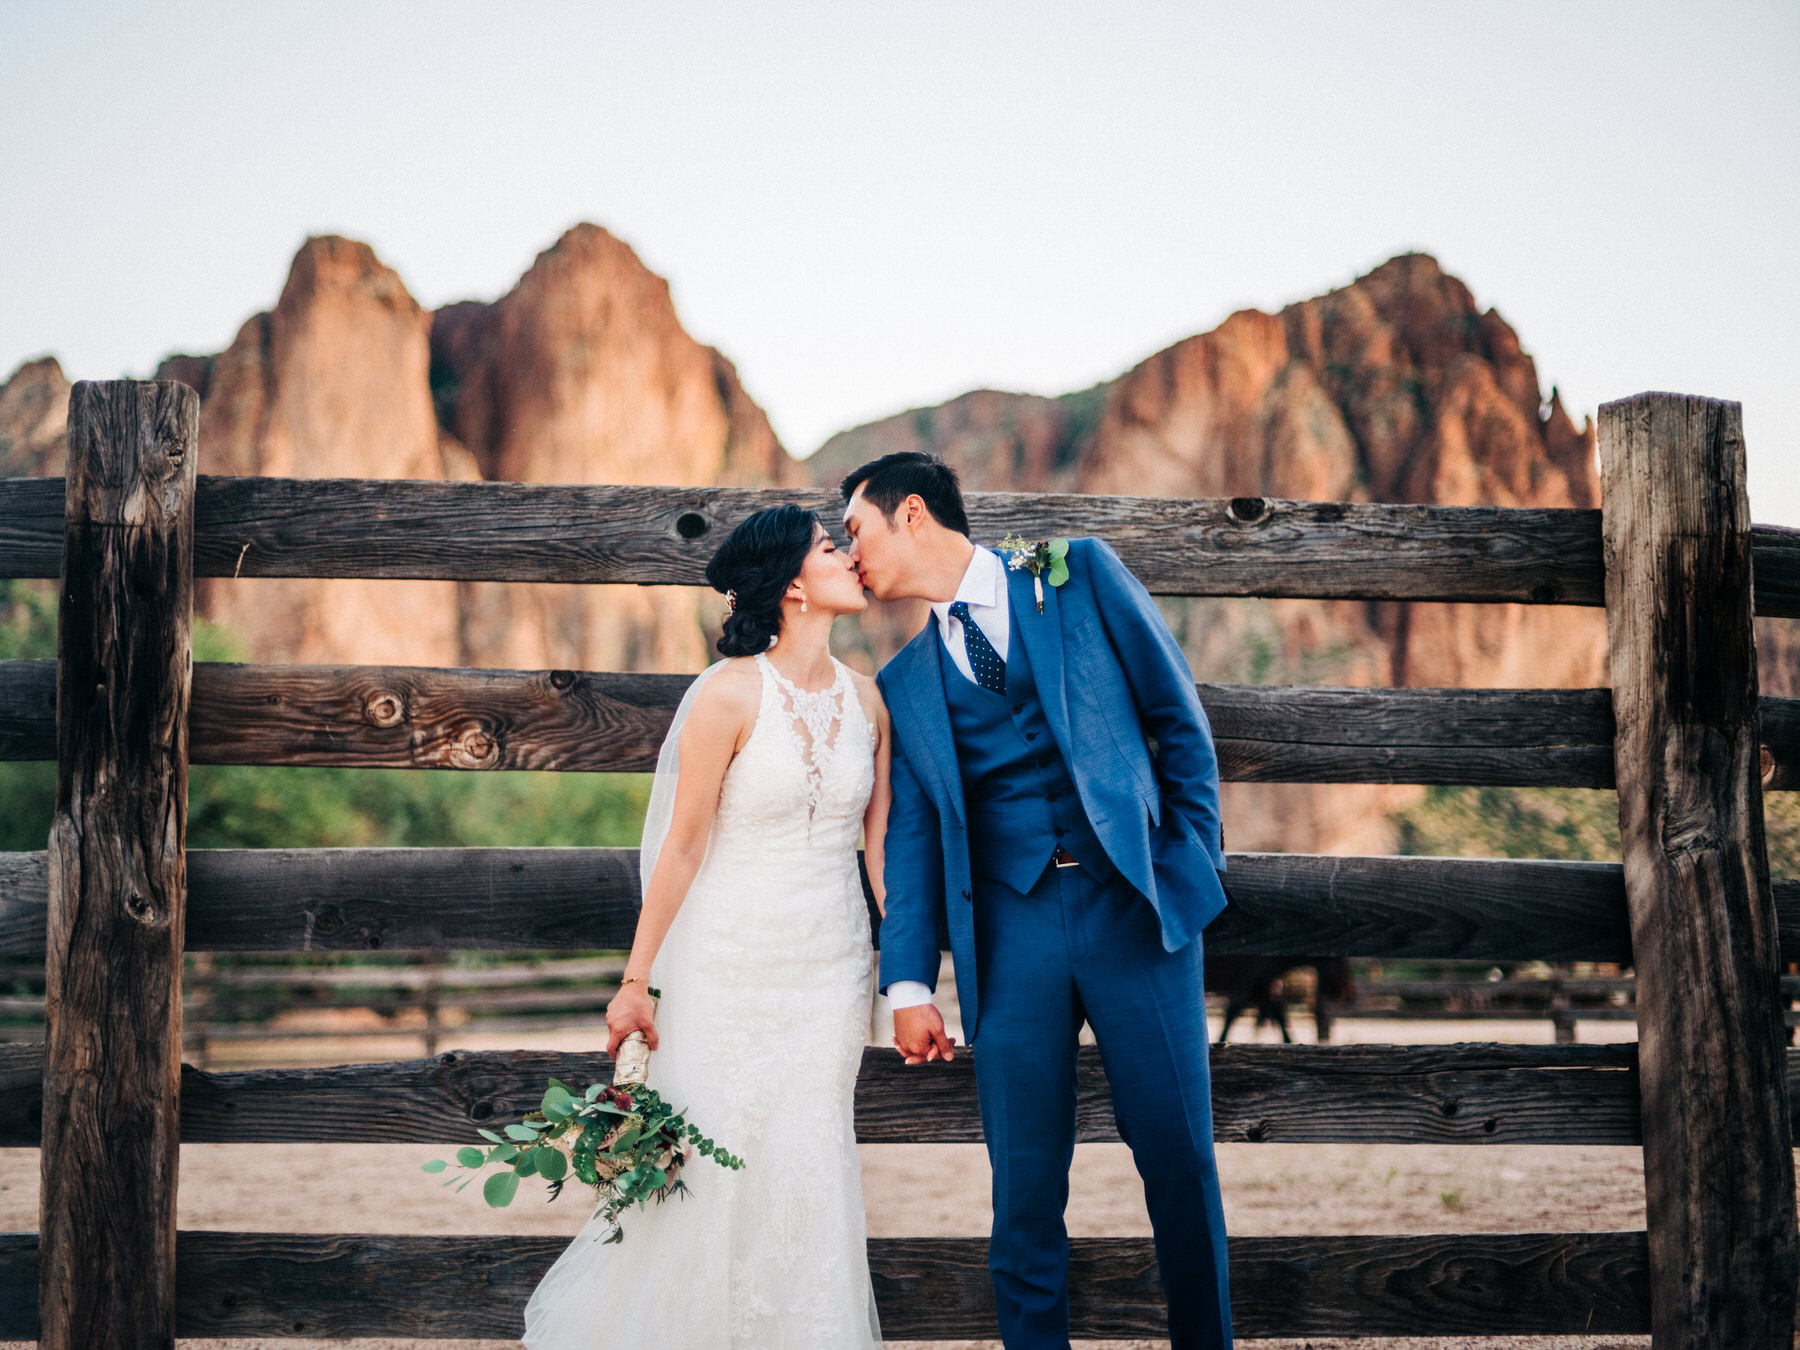 Saguaro Lake Ranch Wedding with horses behind bride and groom in stable